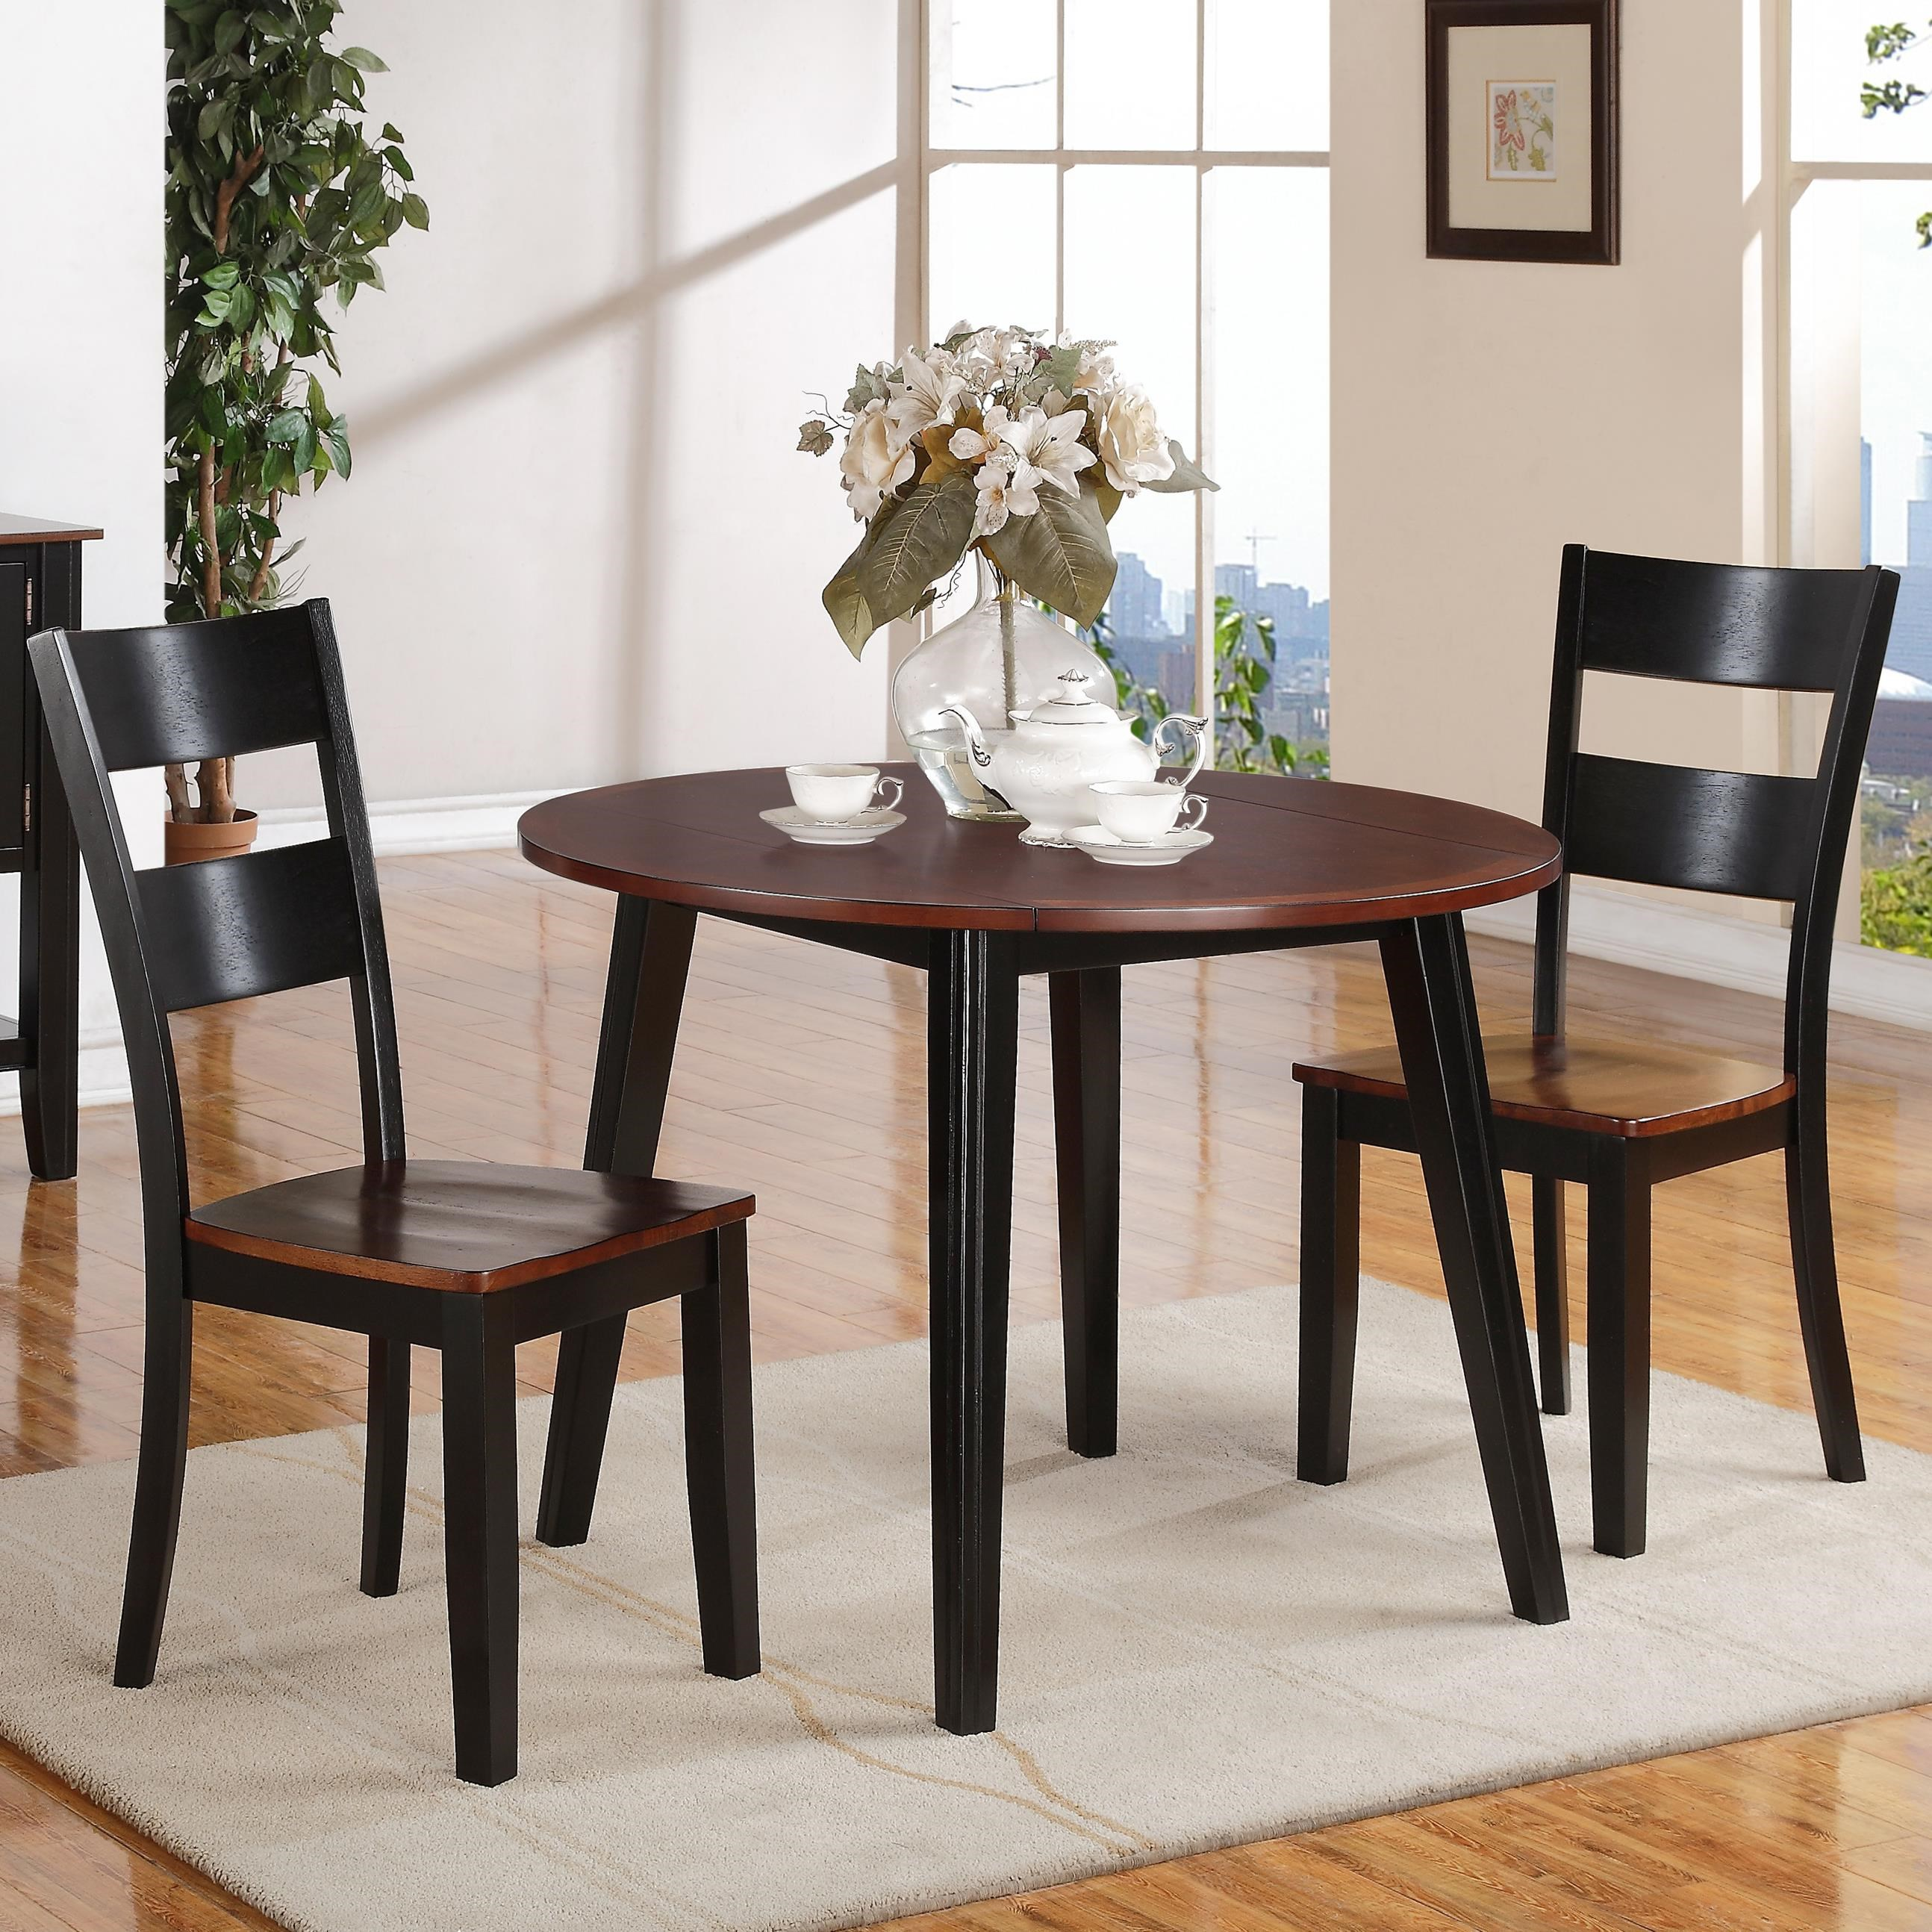 Holland House 82023 Piece Table And Chair Set ...